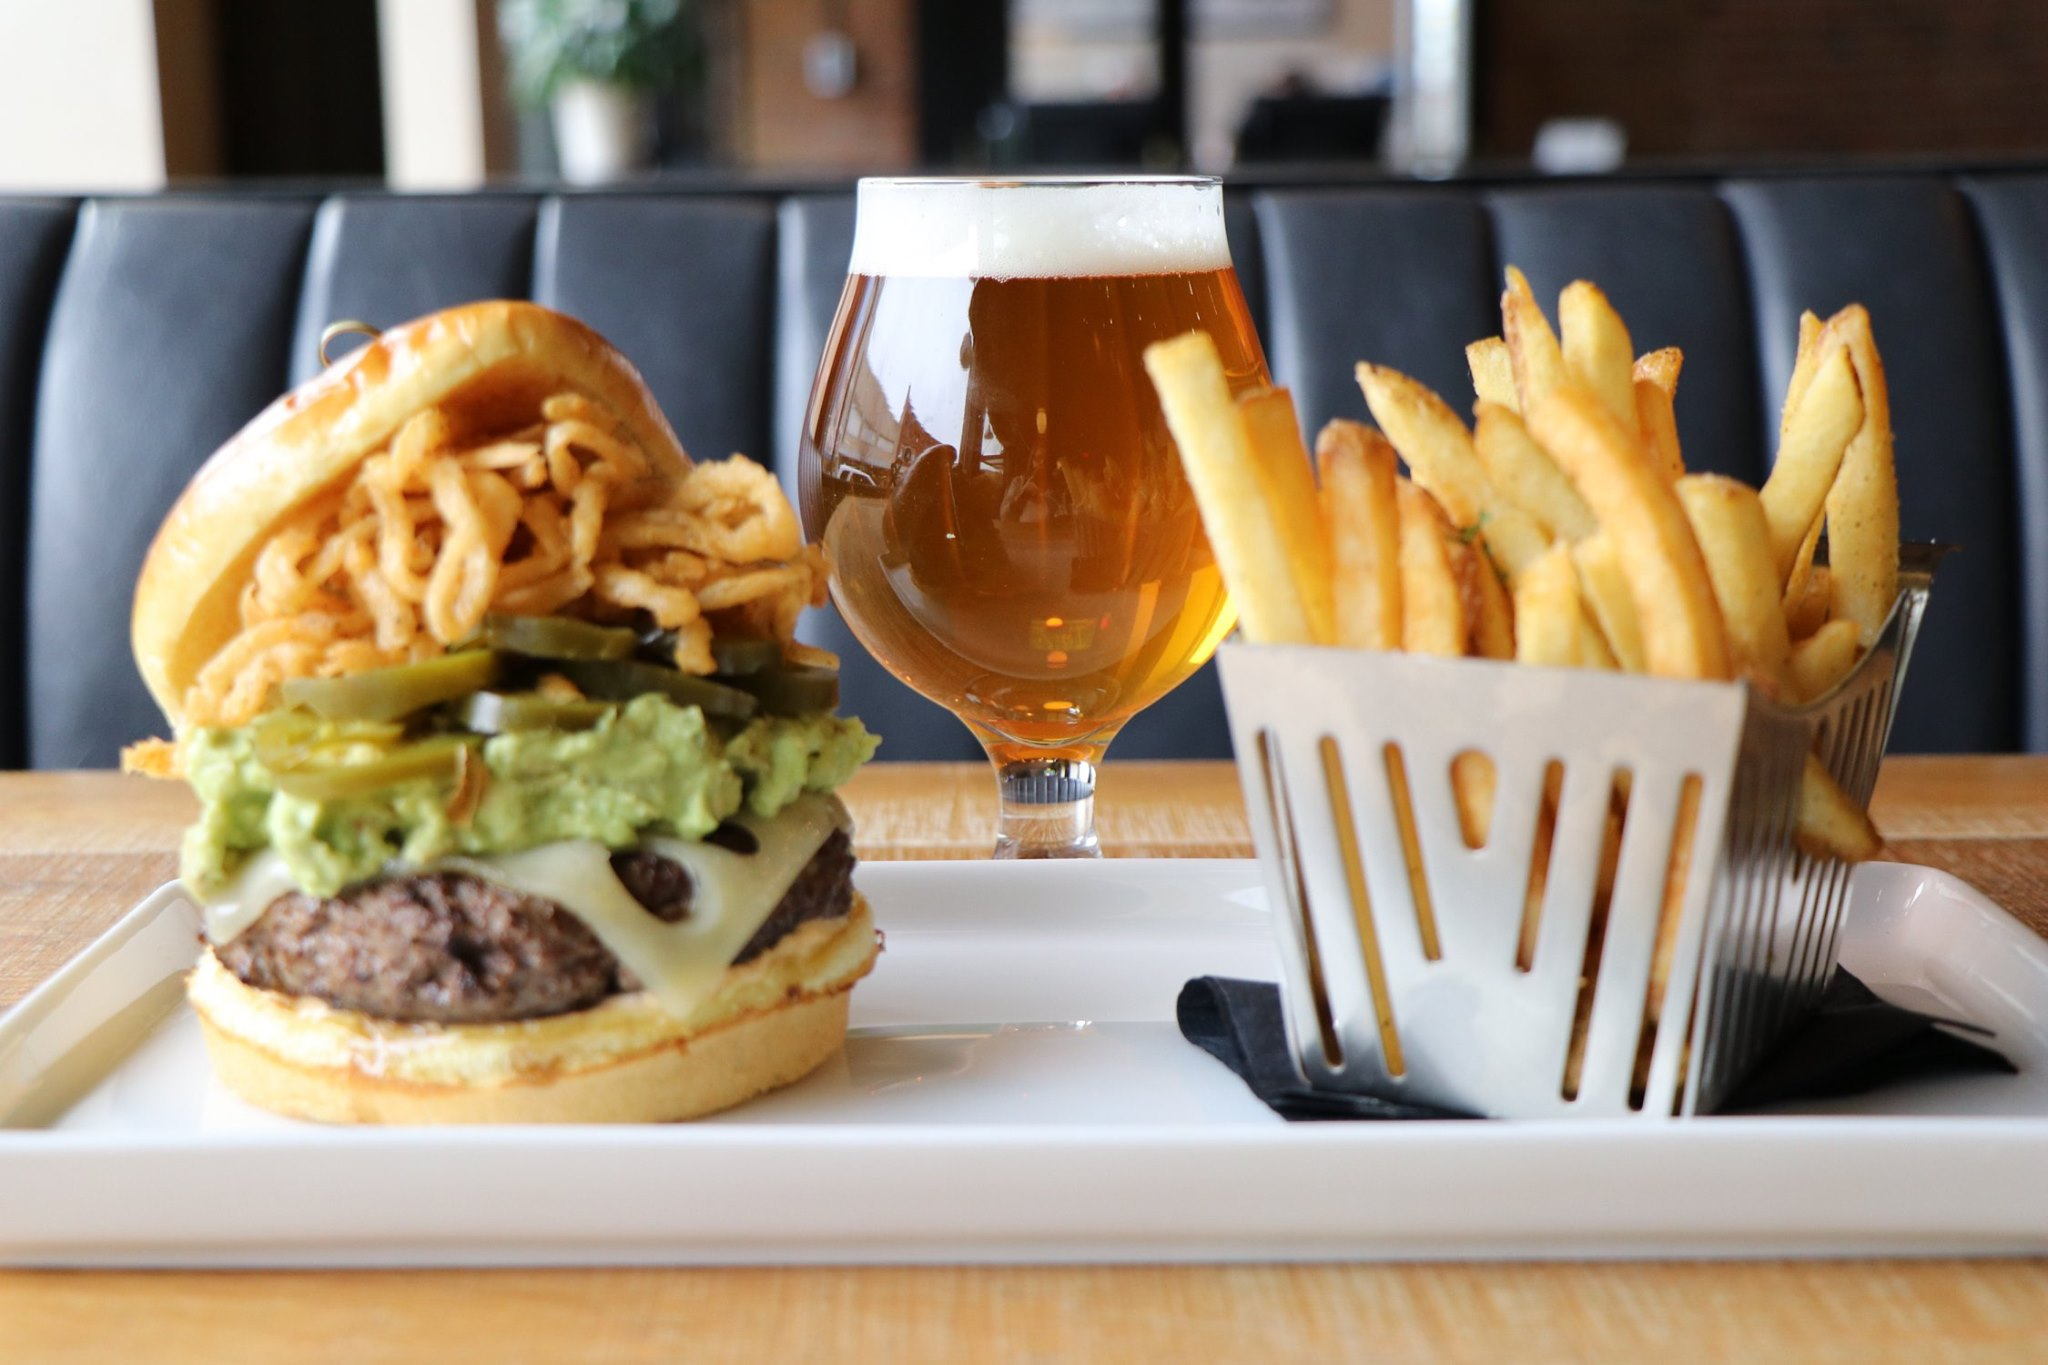 Lone Buffalo burger with a side or fries and a beer.